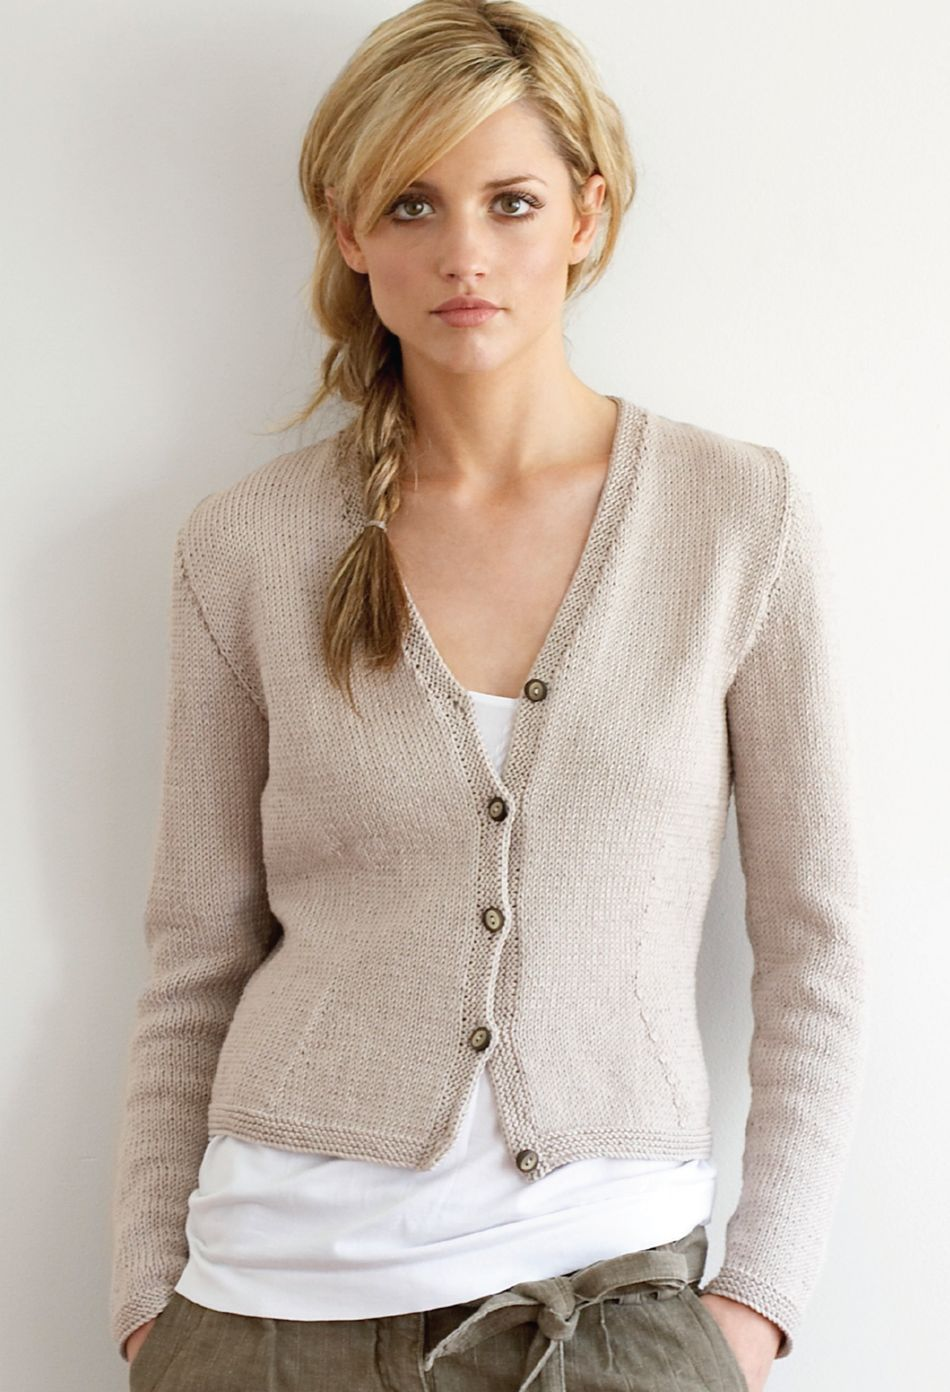 Knitting Pattern Cotton Cardigan : Jo Sharp Fitted Cotton Cardigan Pattern, Knitting Pattern - Halcyon Yarn